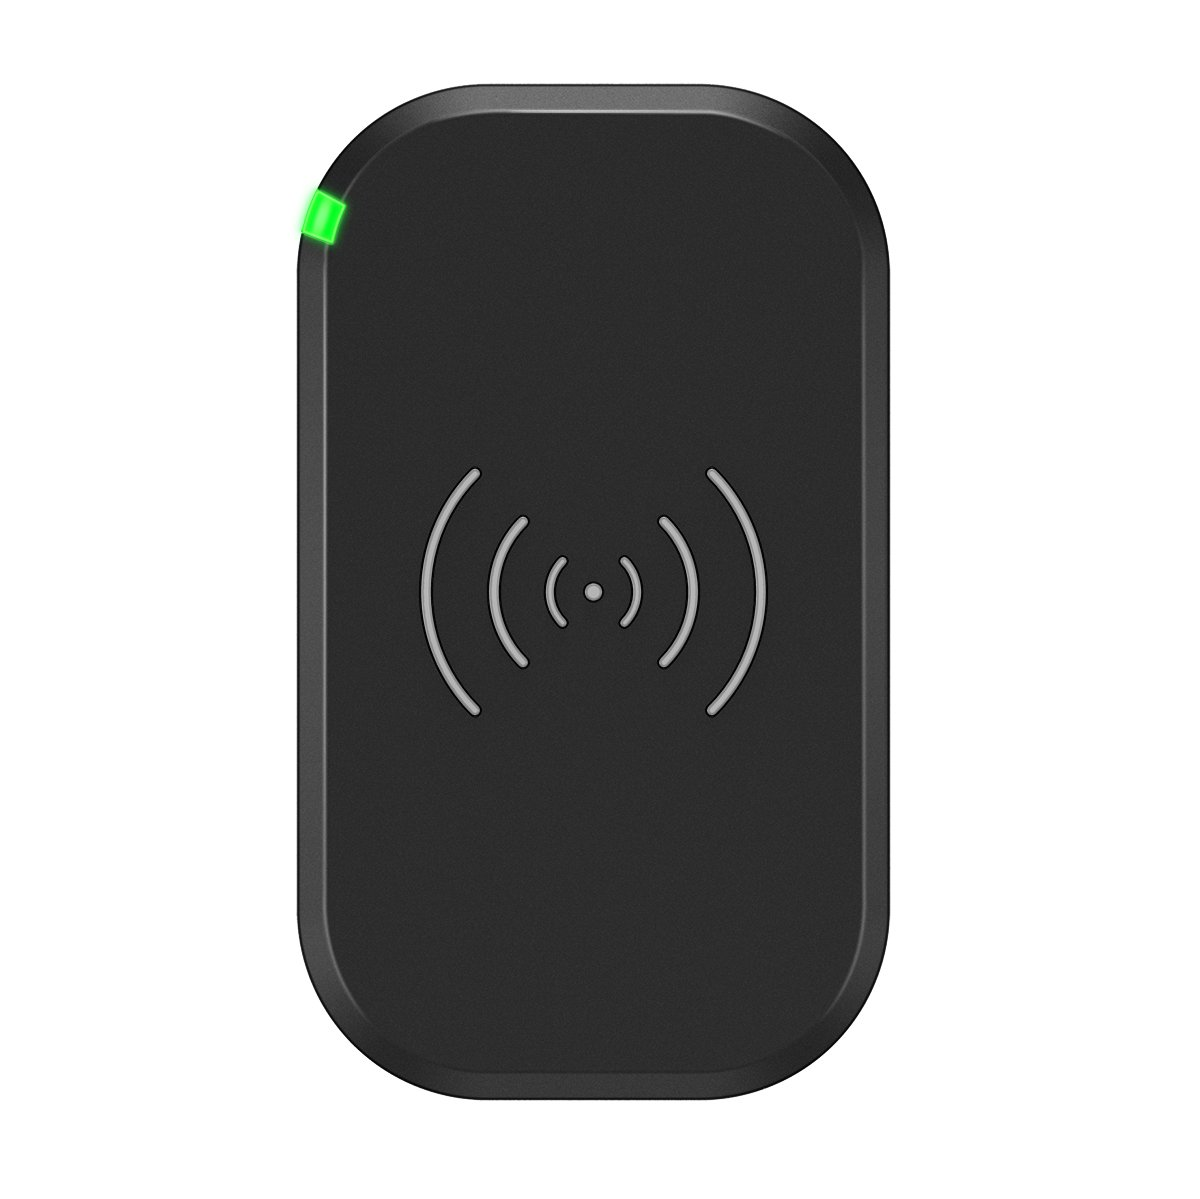 Wireless Charger, CHOETECH 3 Coils 7.5W Wireless Charging Pad Compatible with iPhone X/XS/ XS Max/XR/8/8 Plus, 10W Fast Wireless Charger Compatible with Samsung Galaxy S9/S9+/S8/S8+/Note 9/Note8/S7